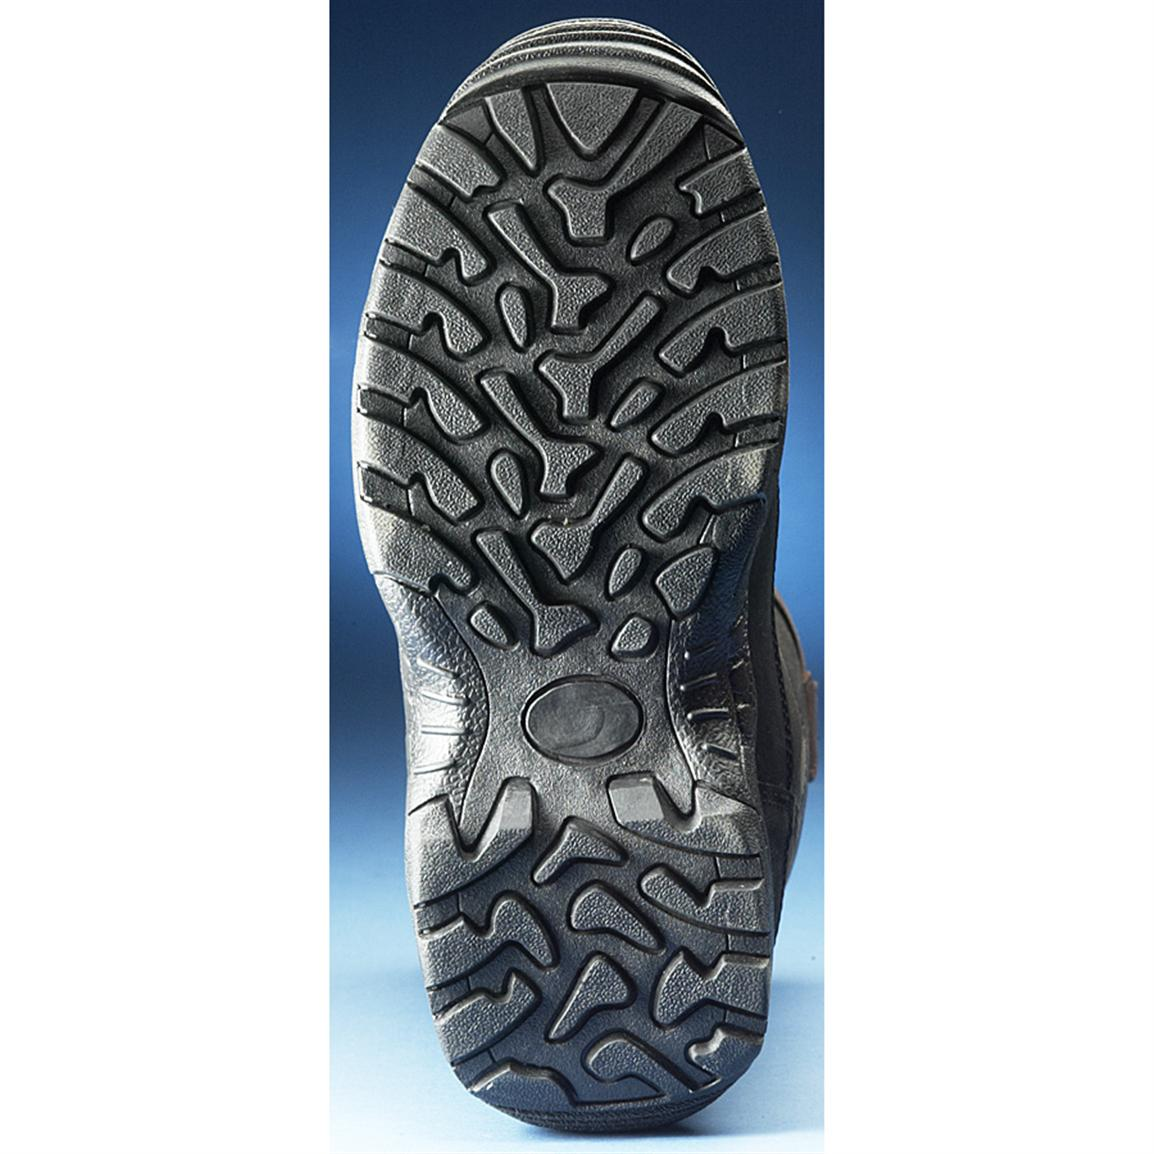 Sure-grip rubber outsole provides terrain-grabbing traction